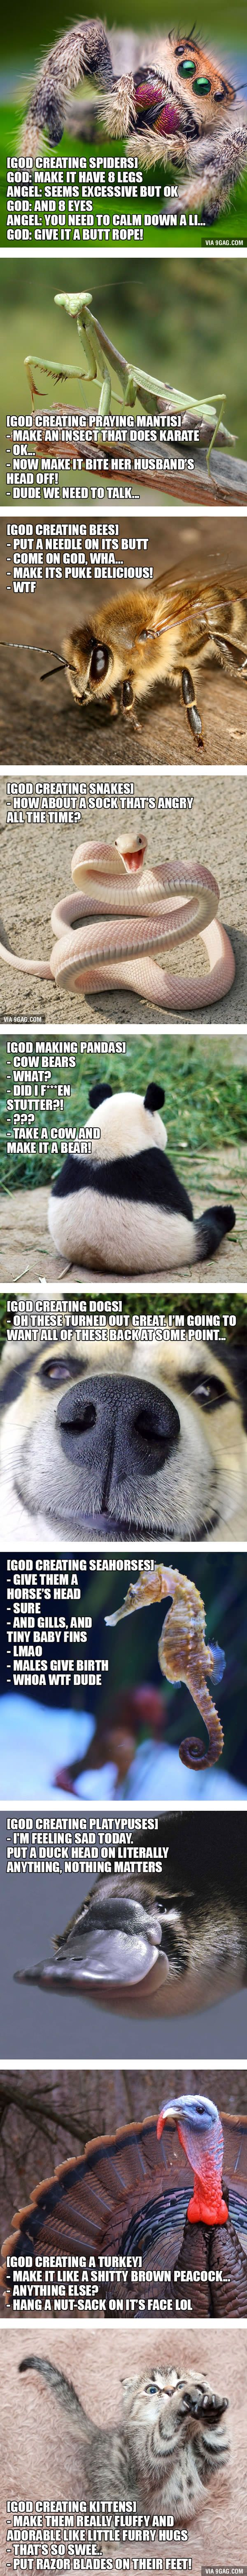 Here's How A Thoughtful God Creates Animals